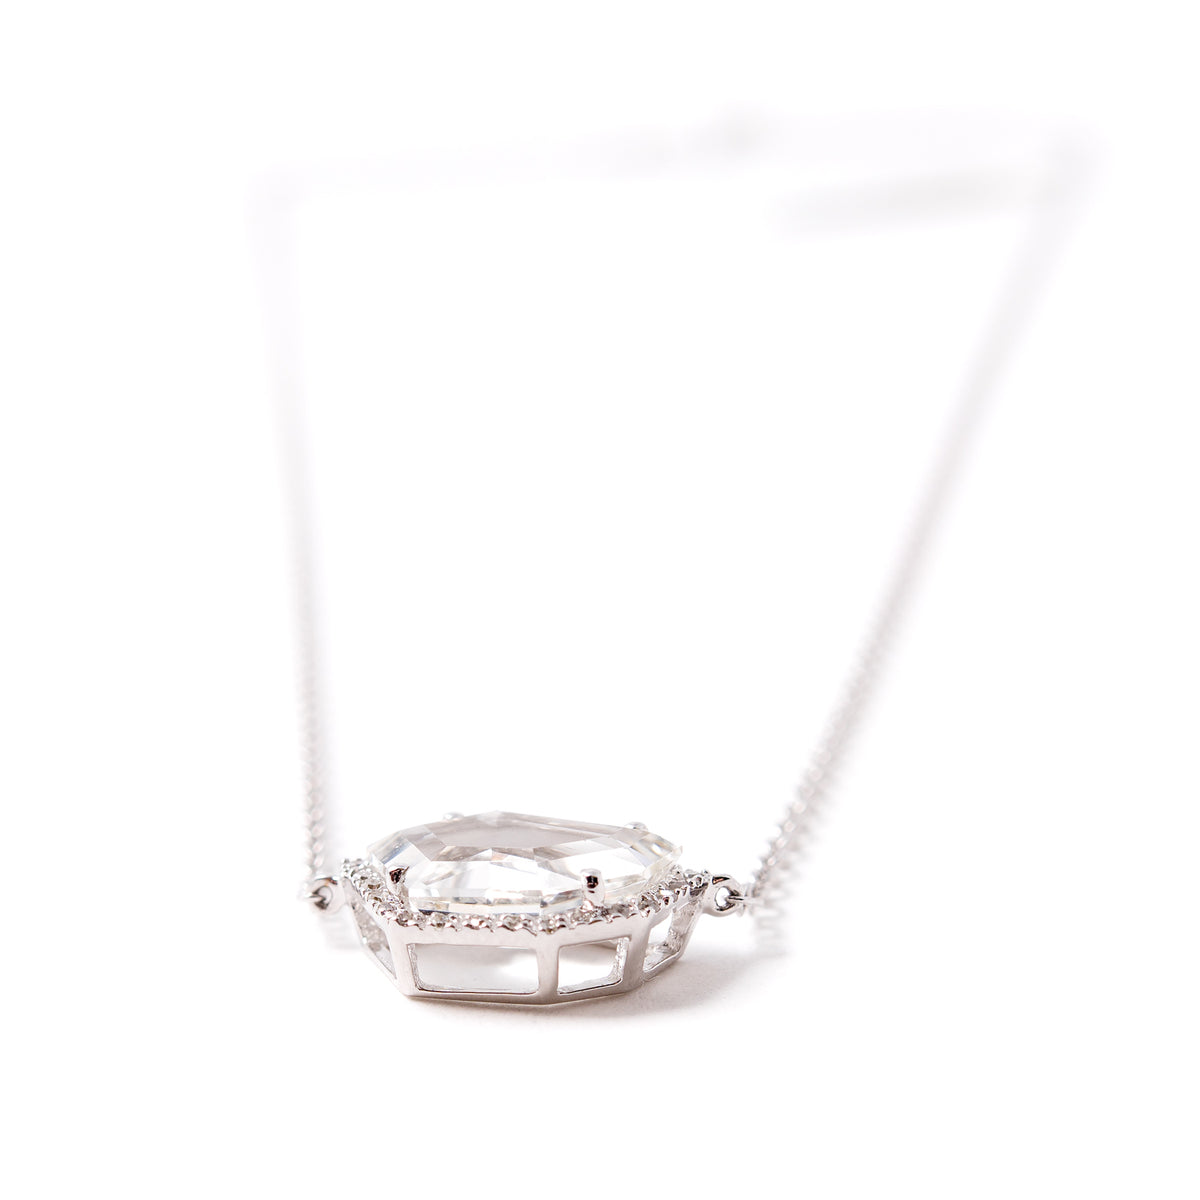 Petite Cubist Necklace in White Topaz | 14K Gold | Janna Conner